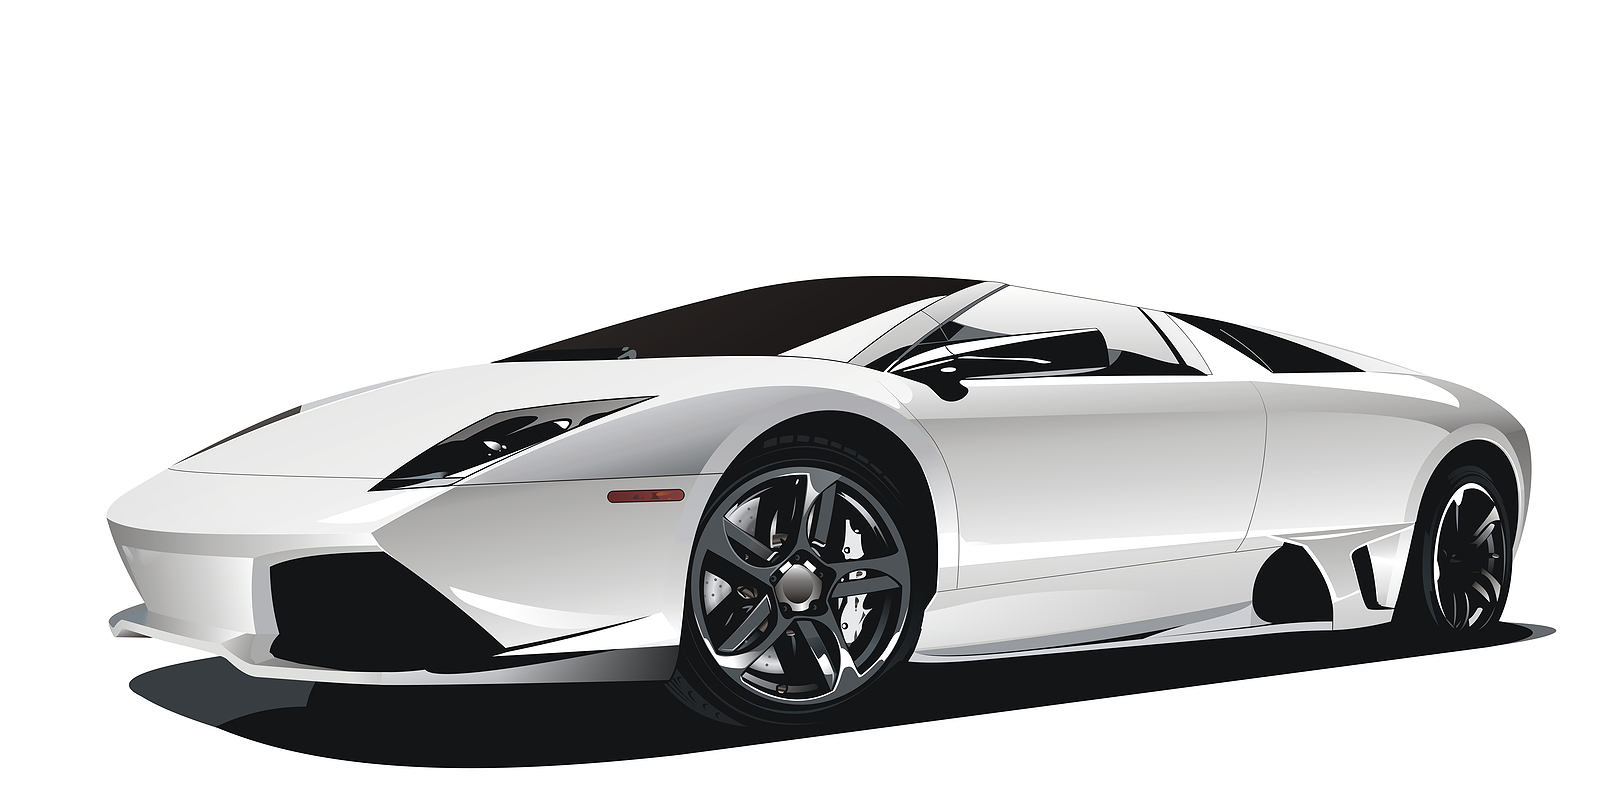 Fast Car PNG Black And White Transparent Fast Car Black And White.